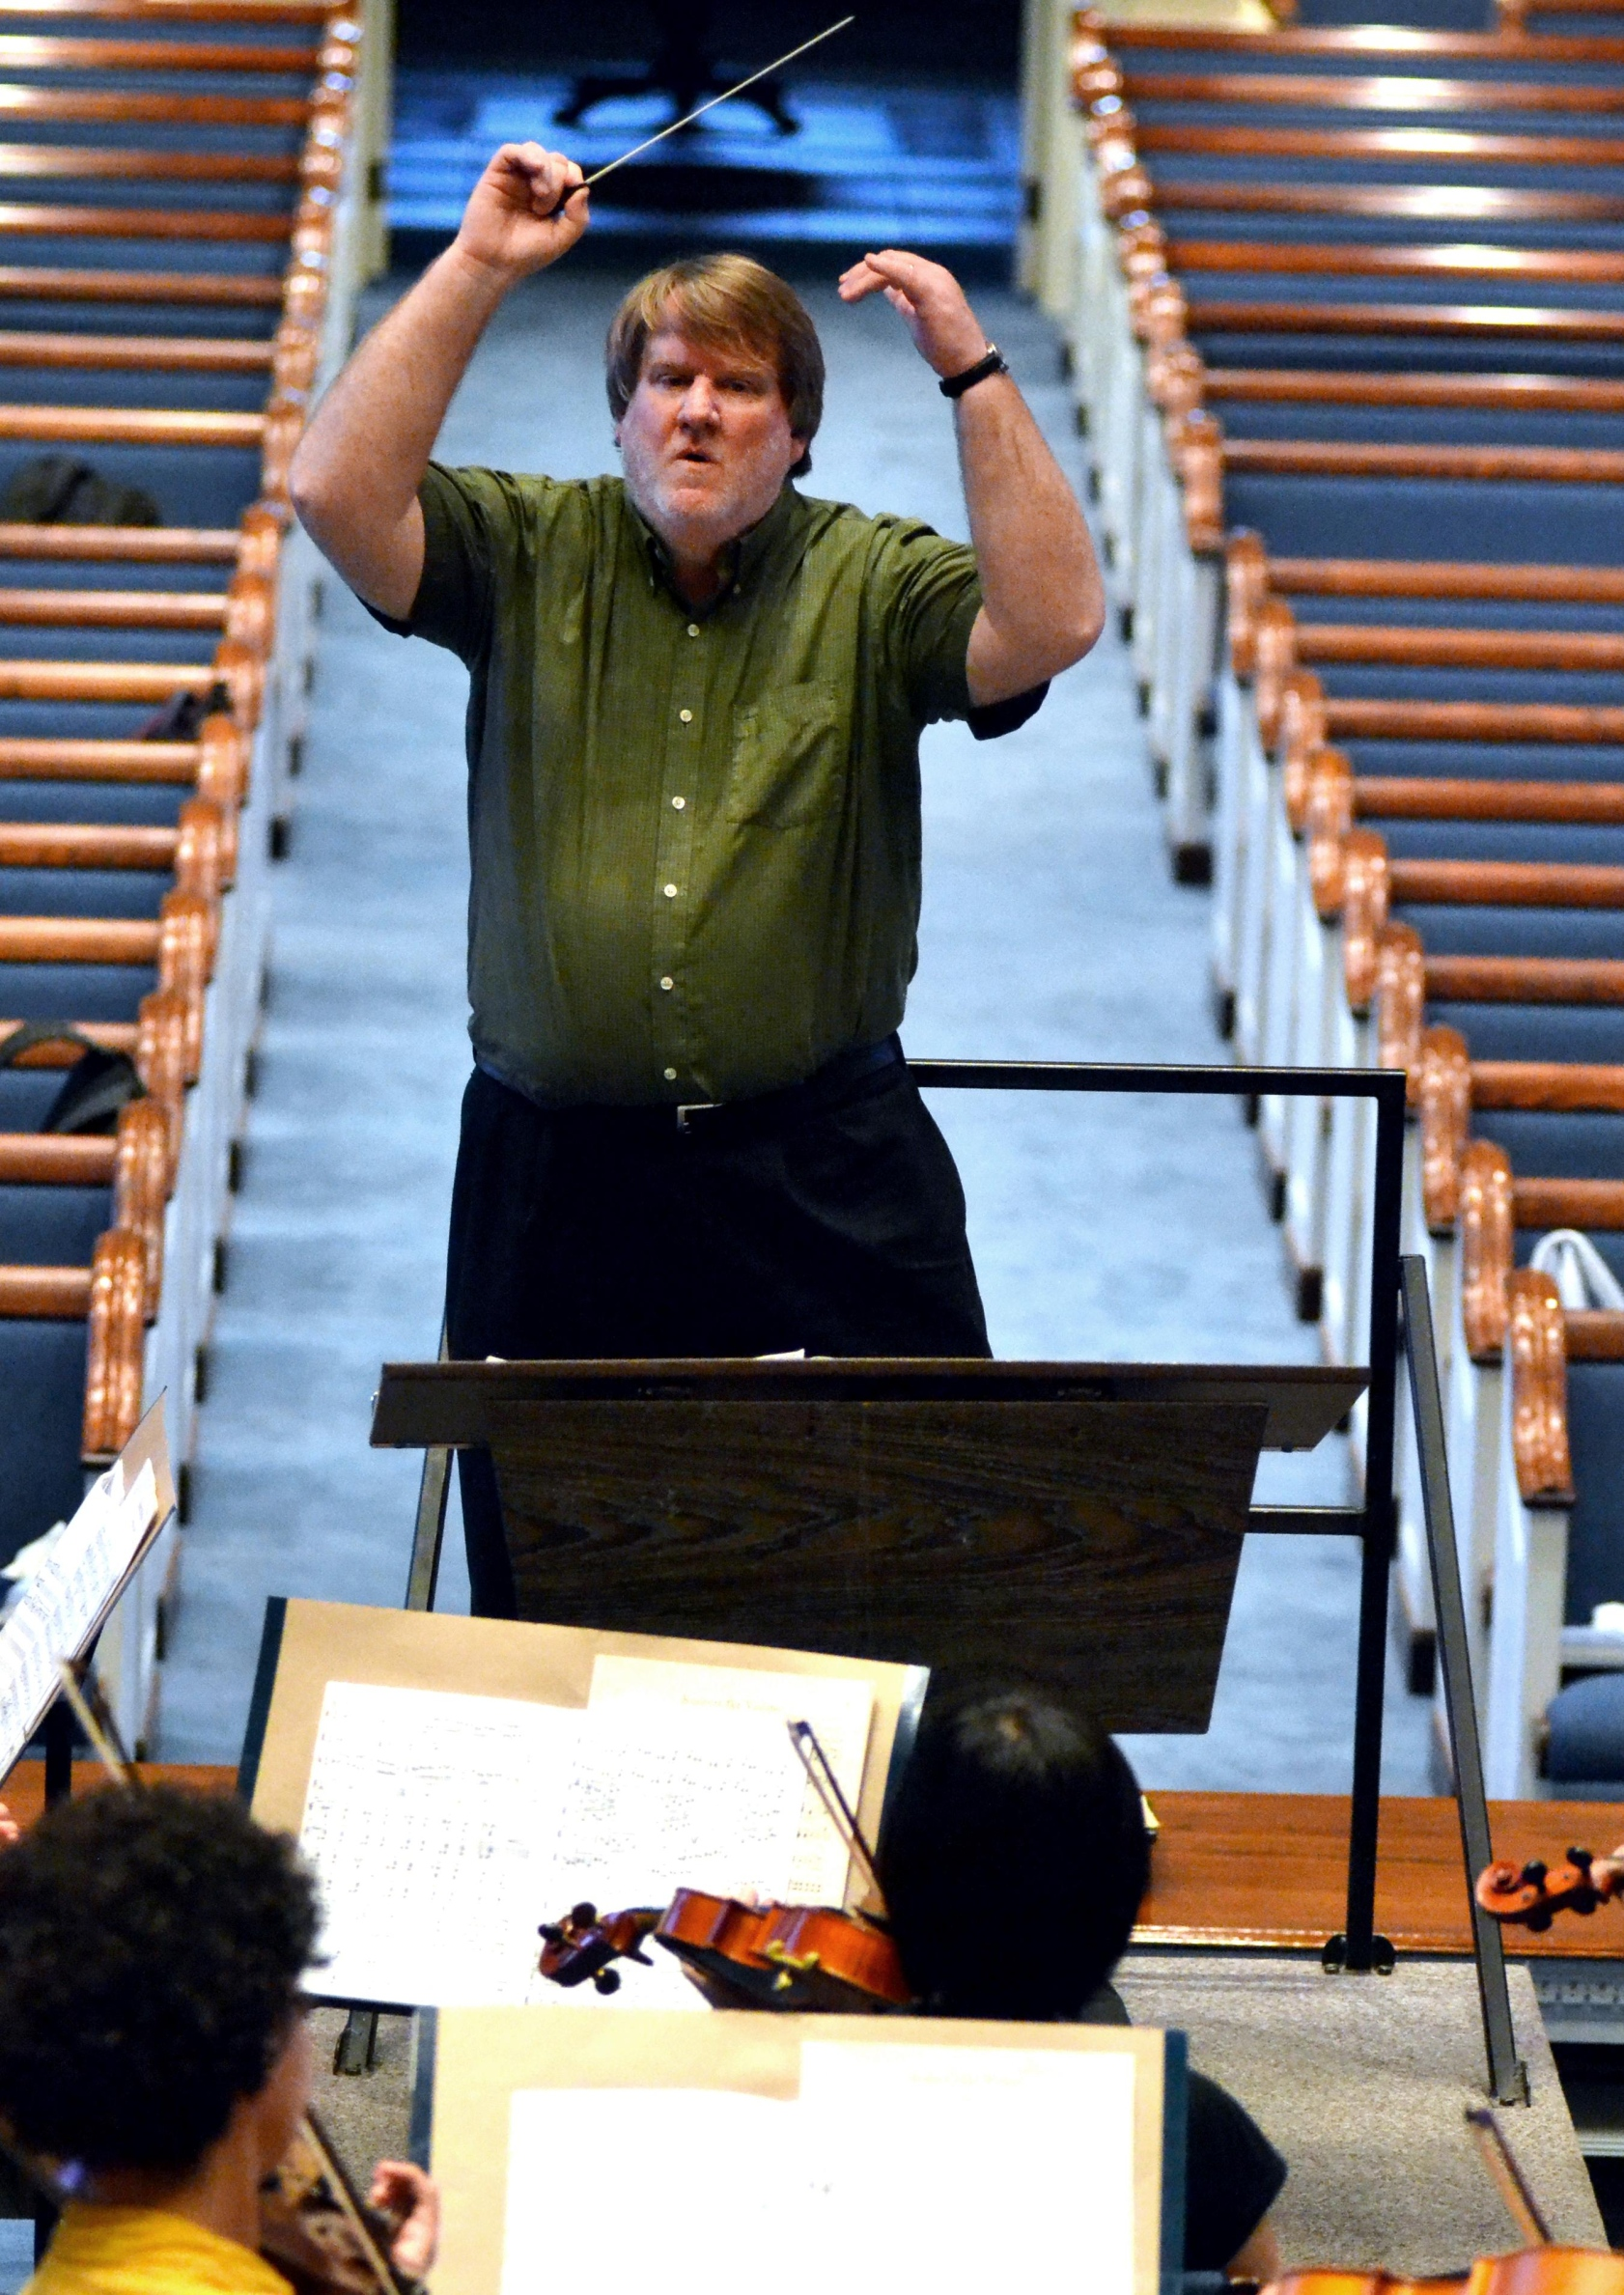 Head of Choral Activities Dr. Gregory Fuller leads USM choirs and Symphony Orchestra in a practice held at Main Street Baptist Church on Monday night. Christopher Little/Printz